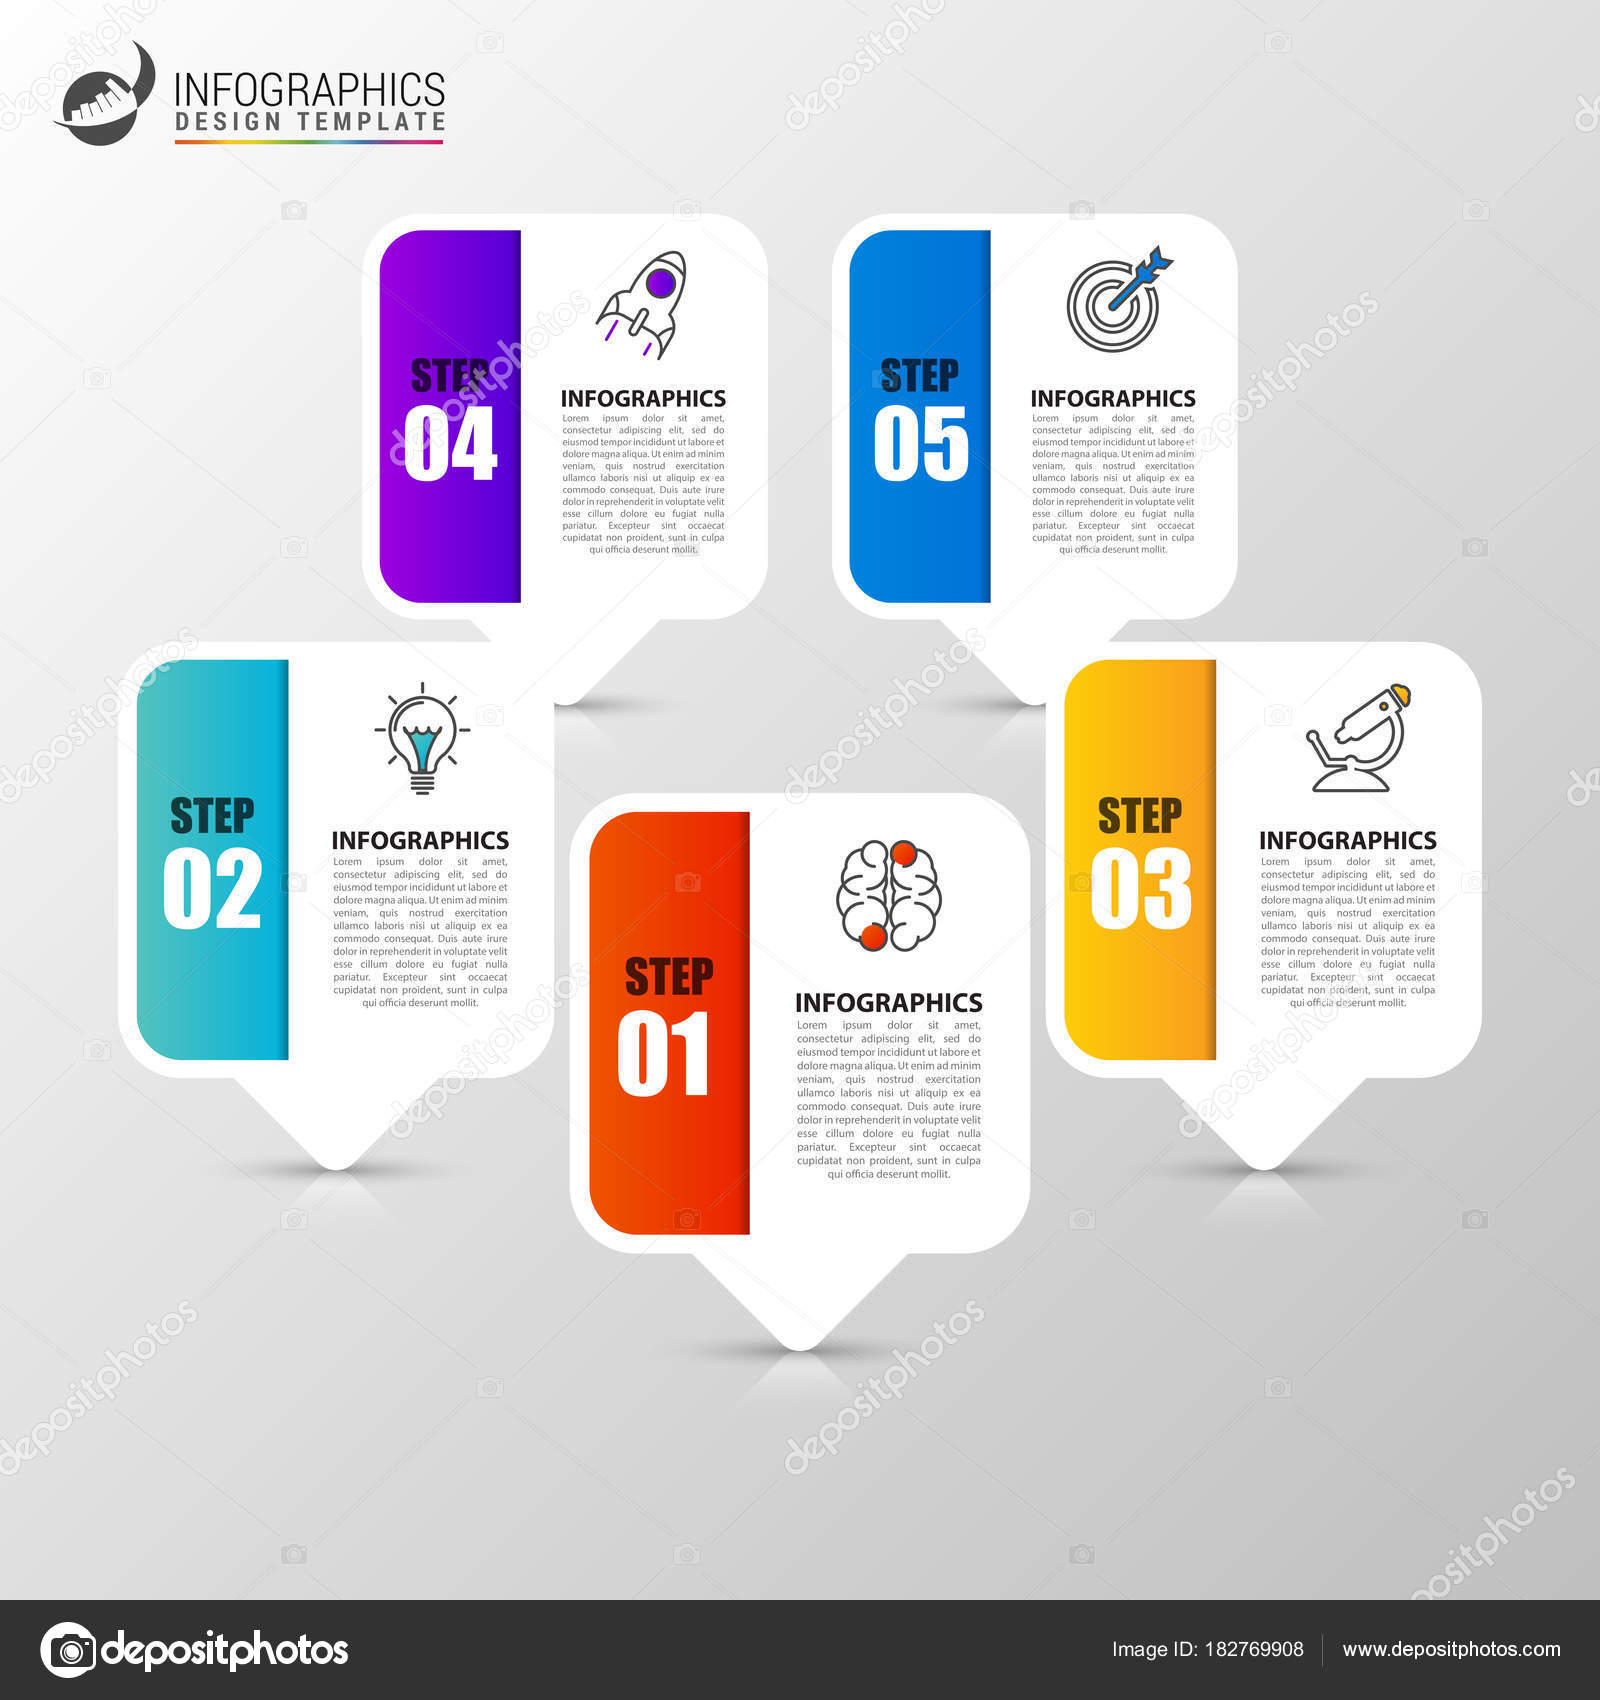 Infographic design template business concept with 5 steps stock infographic design template business concept with 5 steps stock vector cheaphphosting Gallery